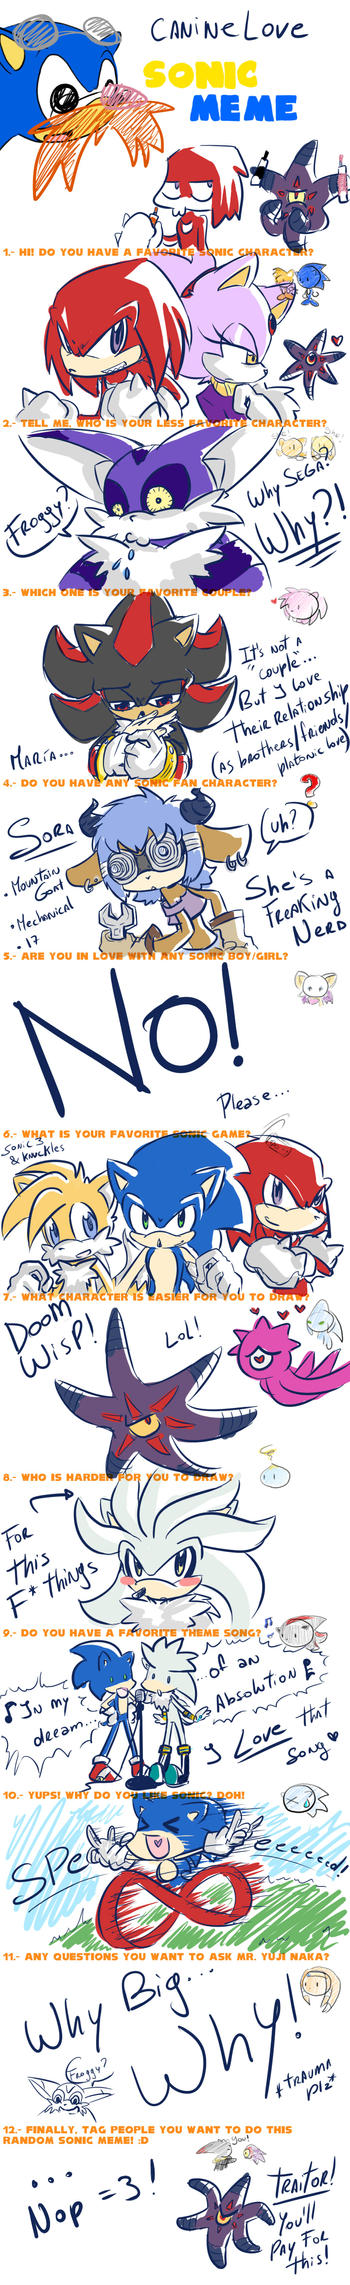 Sonic Meme by caninelove